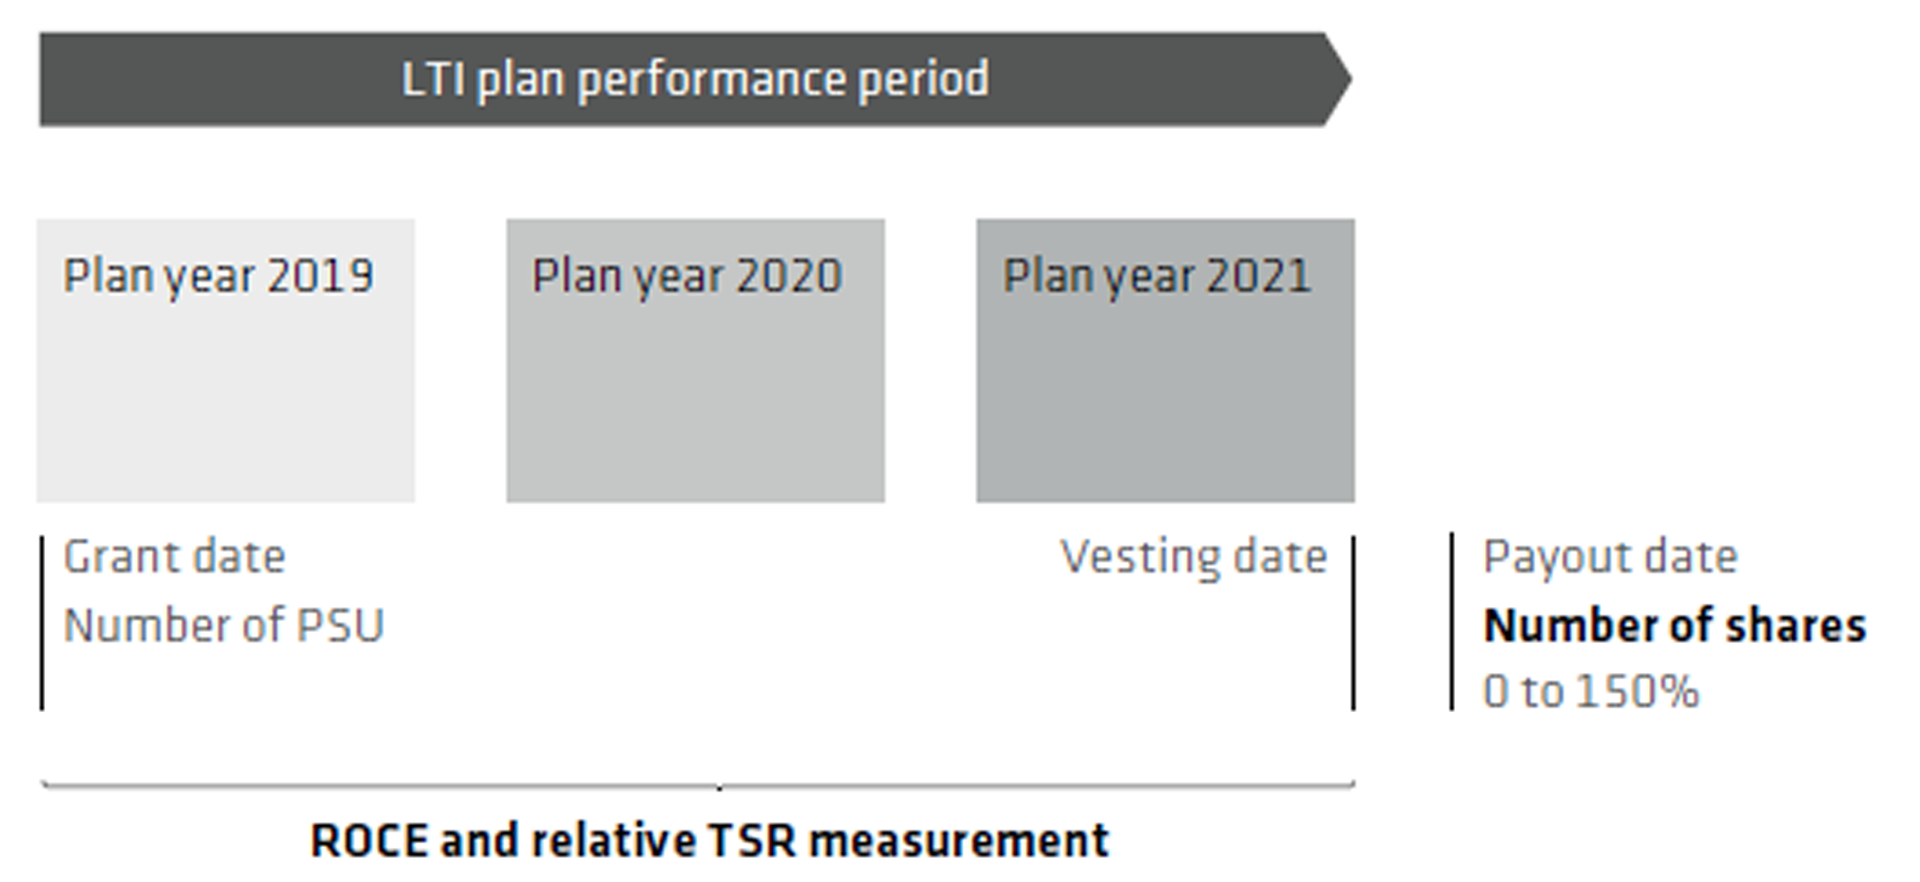 long-term incentive plan period